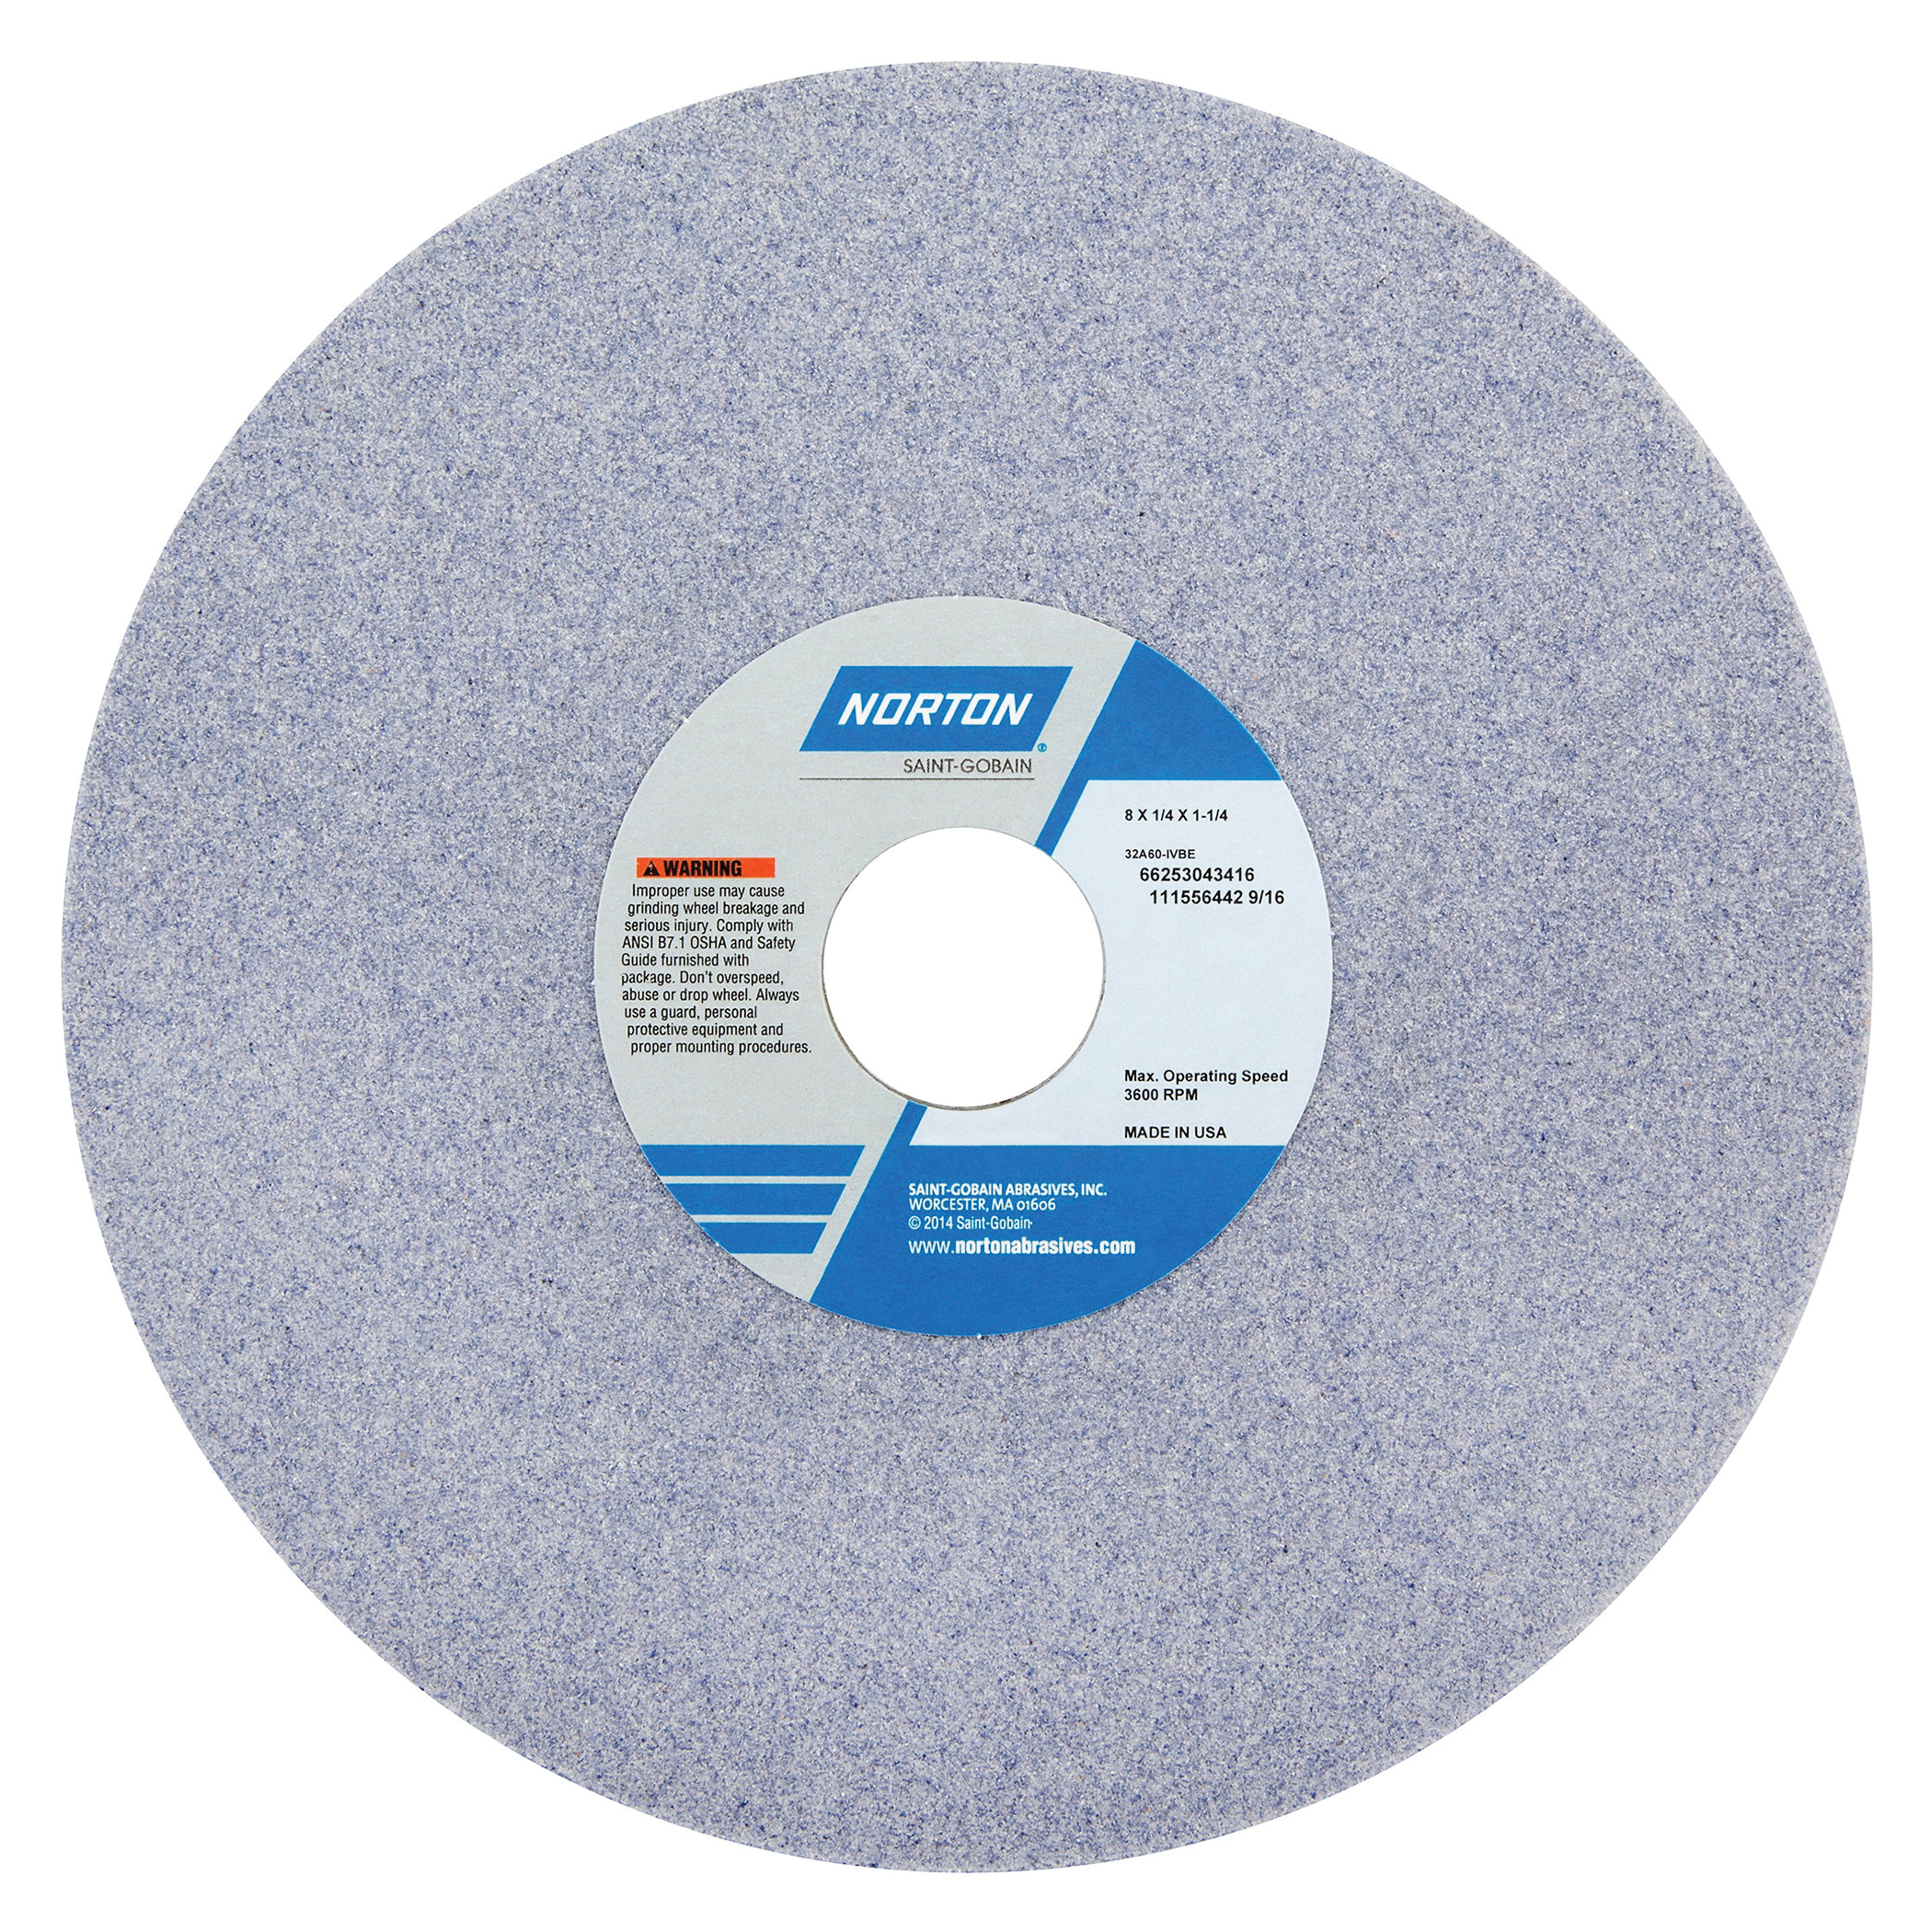 Norton® 66253043416 32A Straight Toolroom Wheel, 8 in Dia x 1/4 in THK, 1-1/4 in Center Hole, 60 Grit, Aluminum Oxide Abrasive